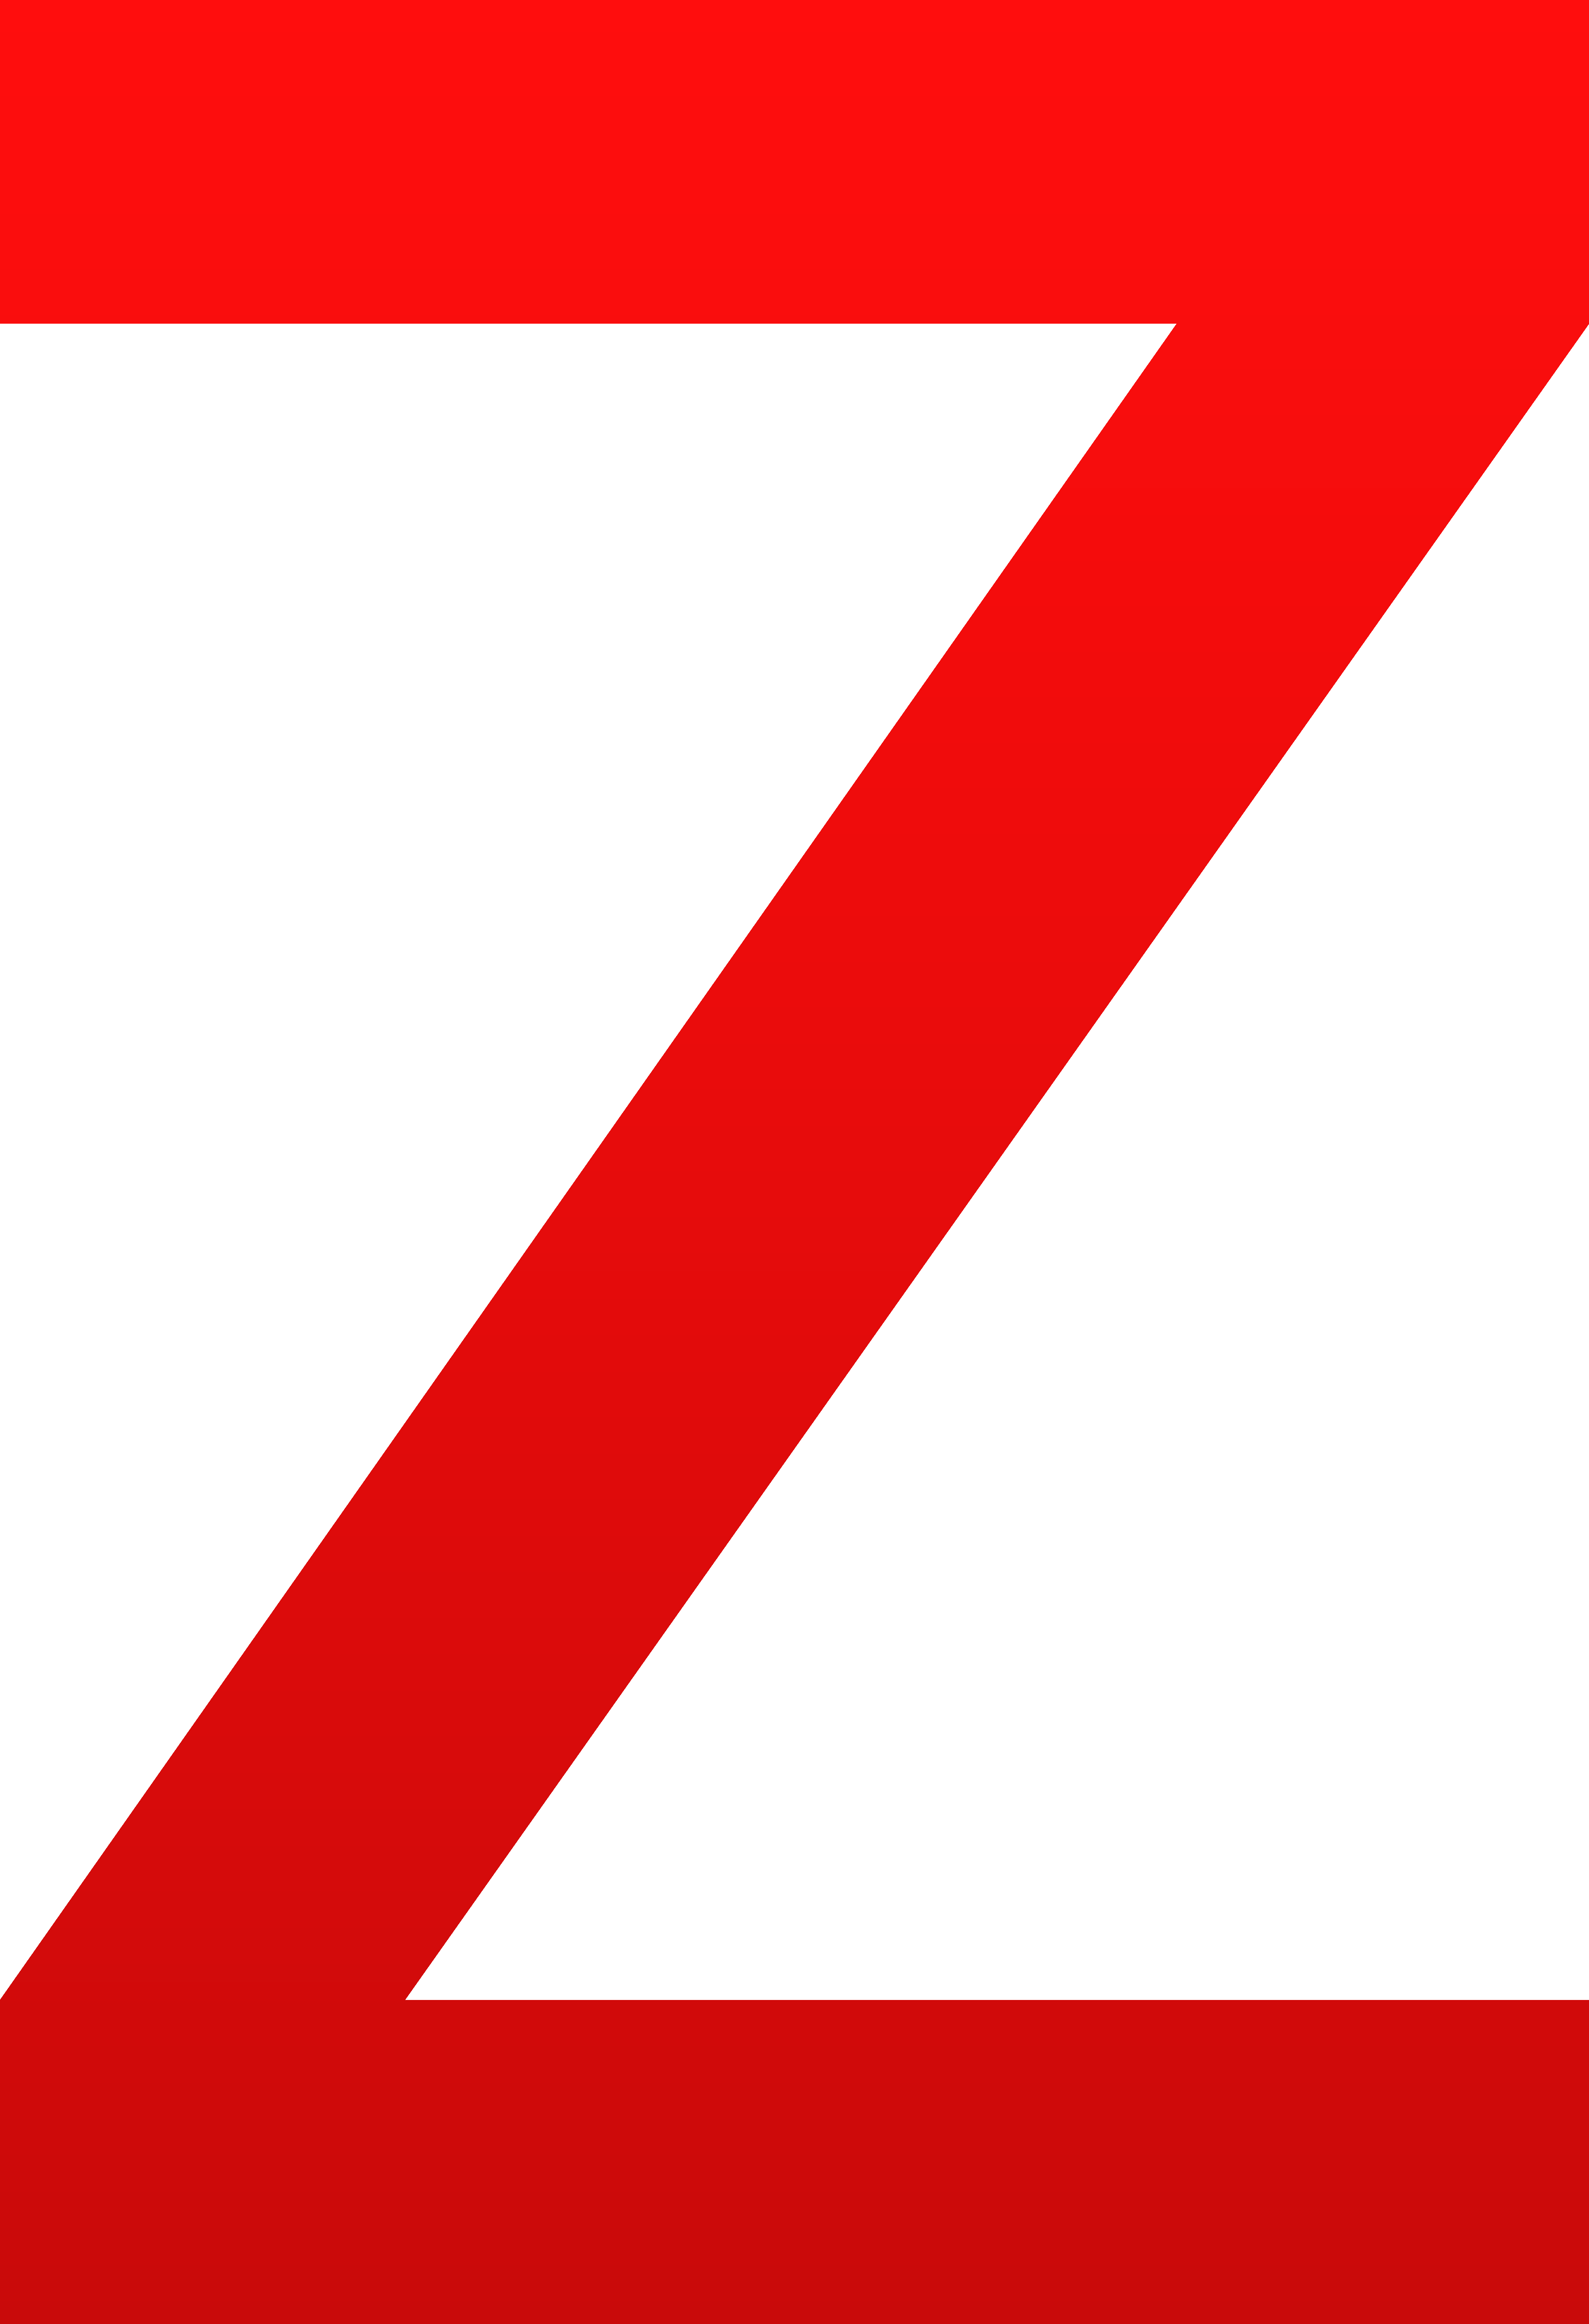 The letter z free. Clipart sword red